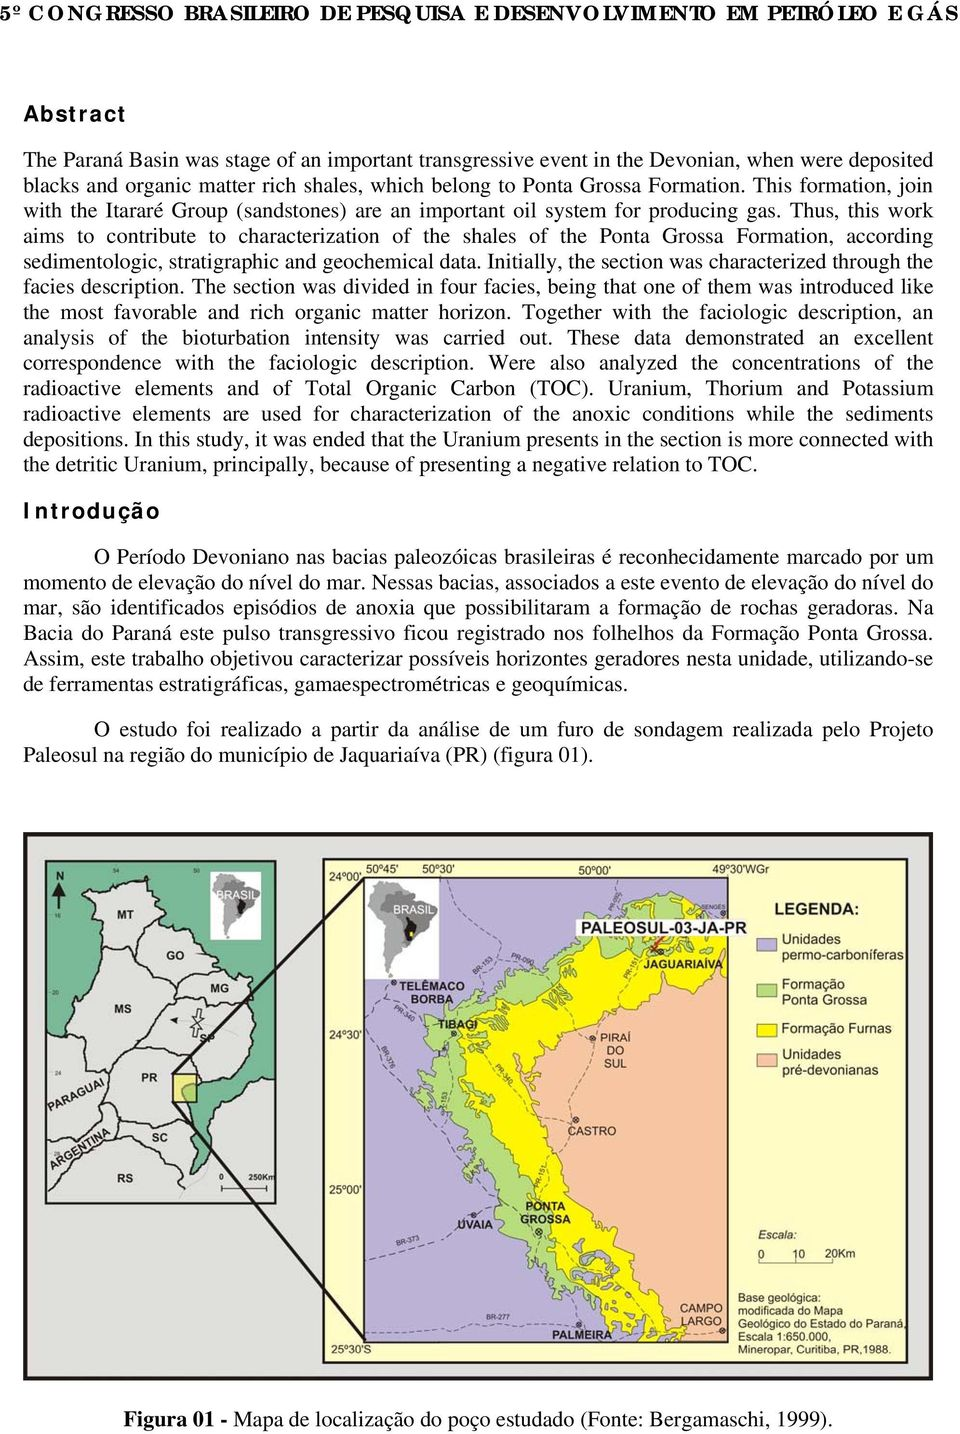 Thus, this work aims to contribute to characterization of the shales of the Ponta Grossa Formation, according sedimentologic, stratigraphic and geochemical data.